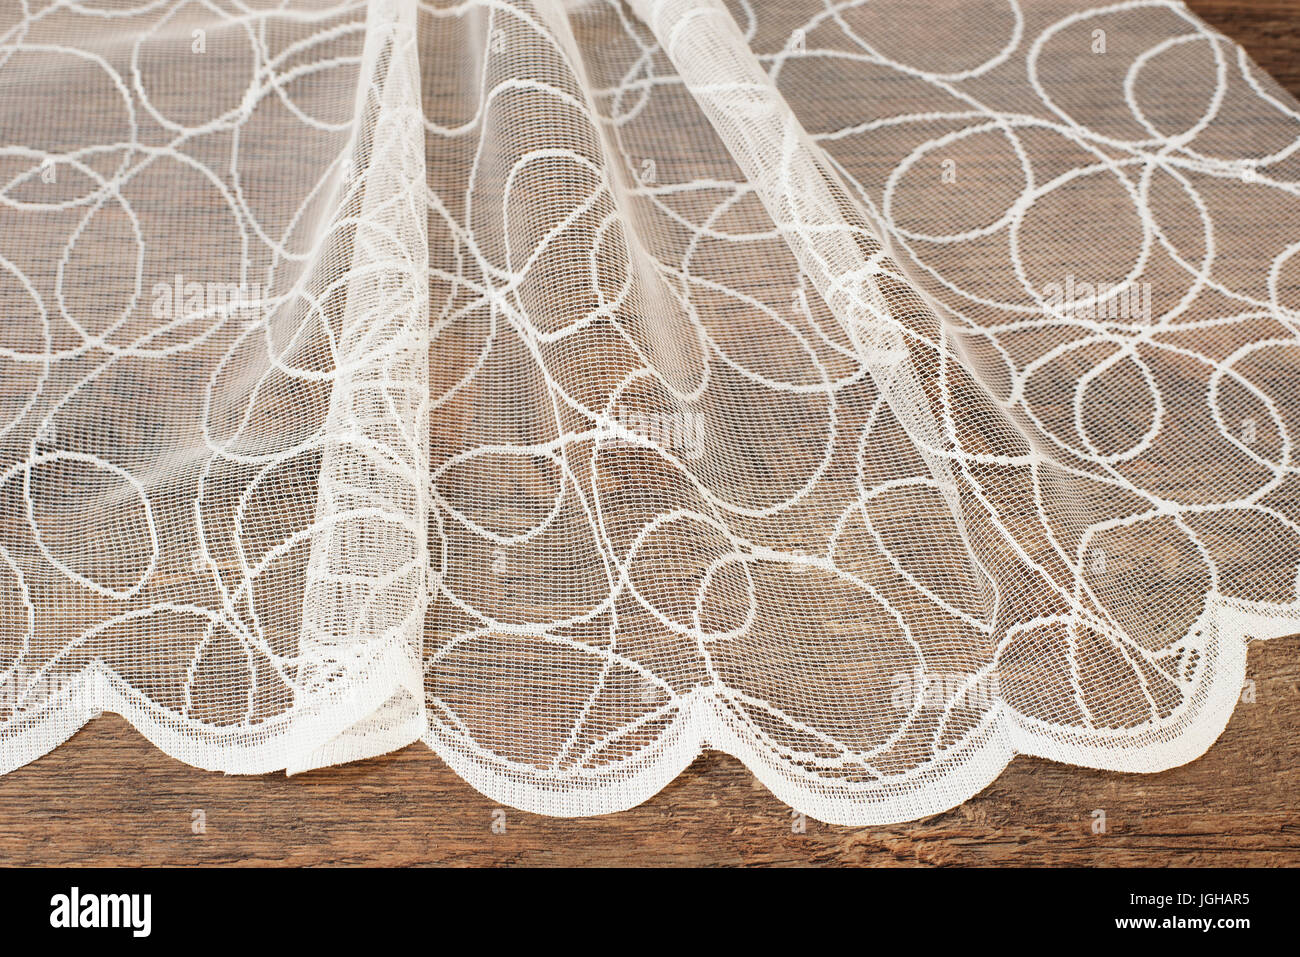 Close Up Of Beautiful White Tulle Sheer Curtains Fabric Sample Texture Background Pattern Wedding Concept Interior Design Vintage Lace Ch